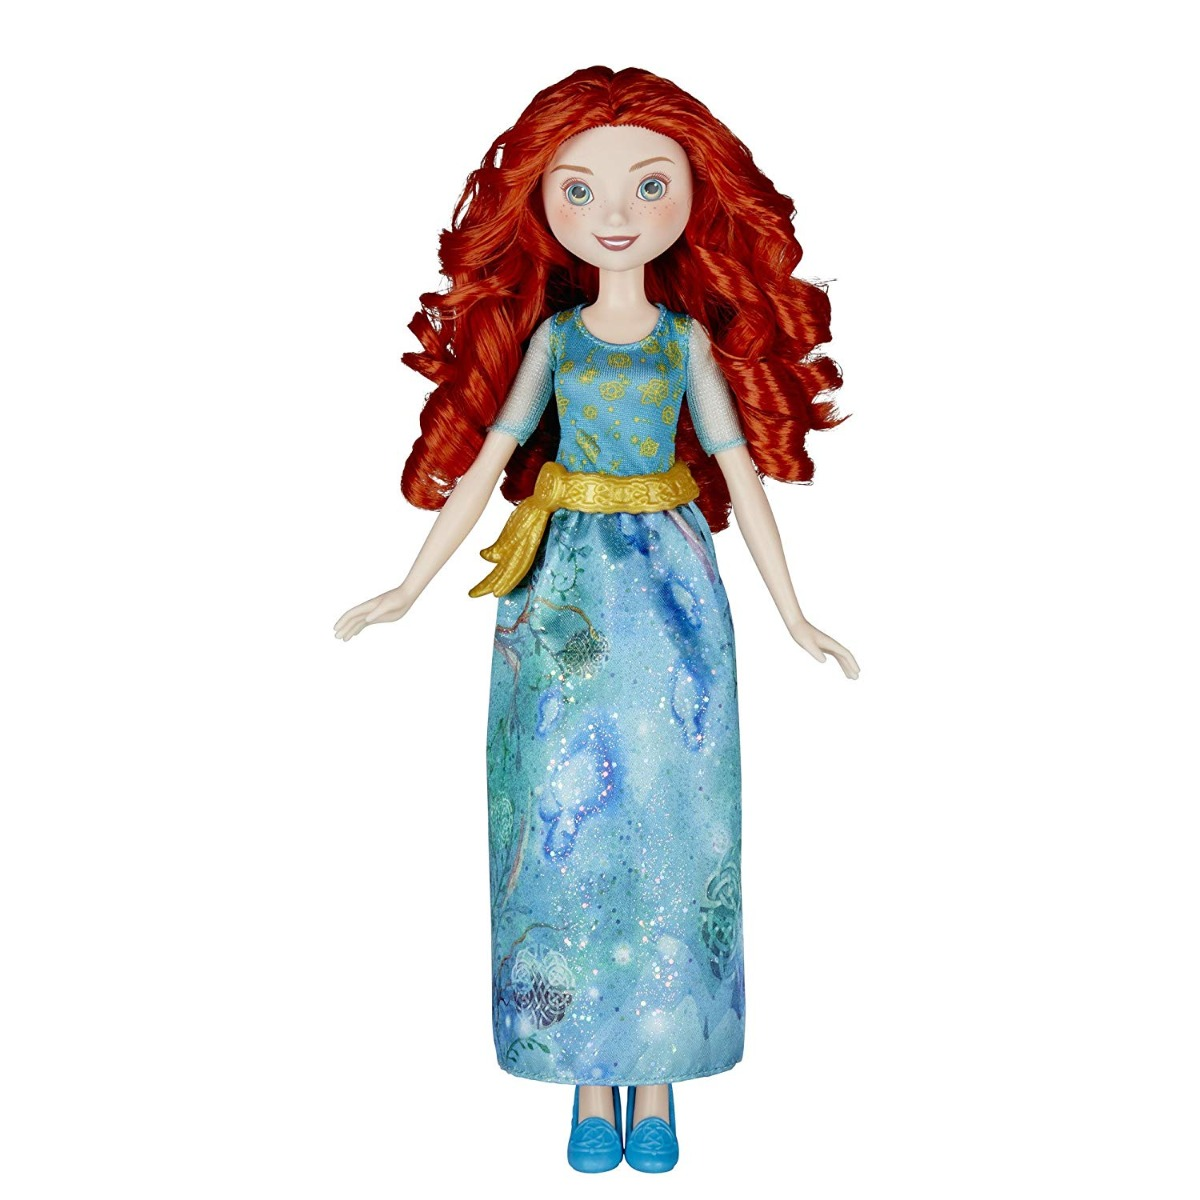 Papusa Hasbro Disney Princess Royal Shimmer, Merida